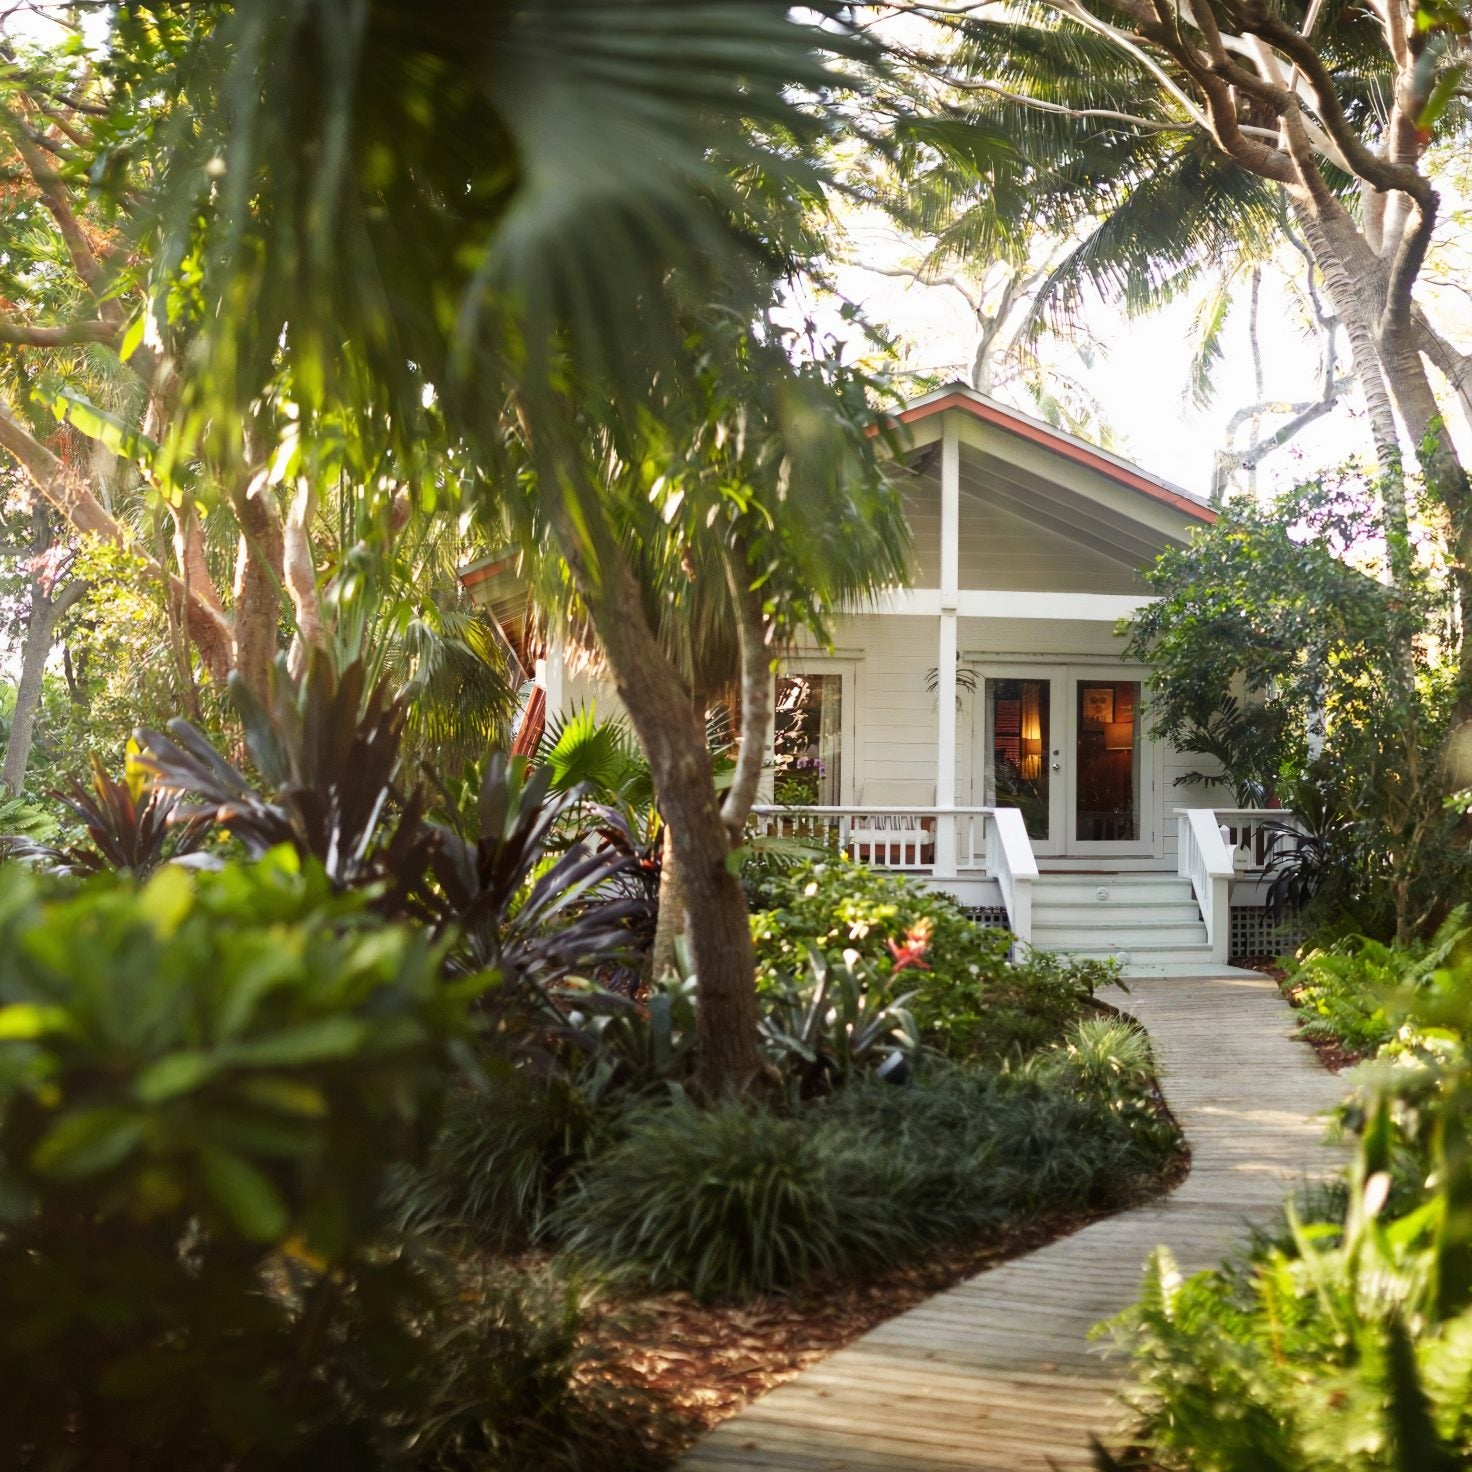 8 Luxury Hotels and Resorts Welcoming Guests Back With Safety and Social Distancing In Mind